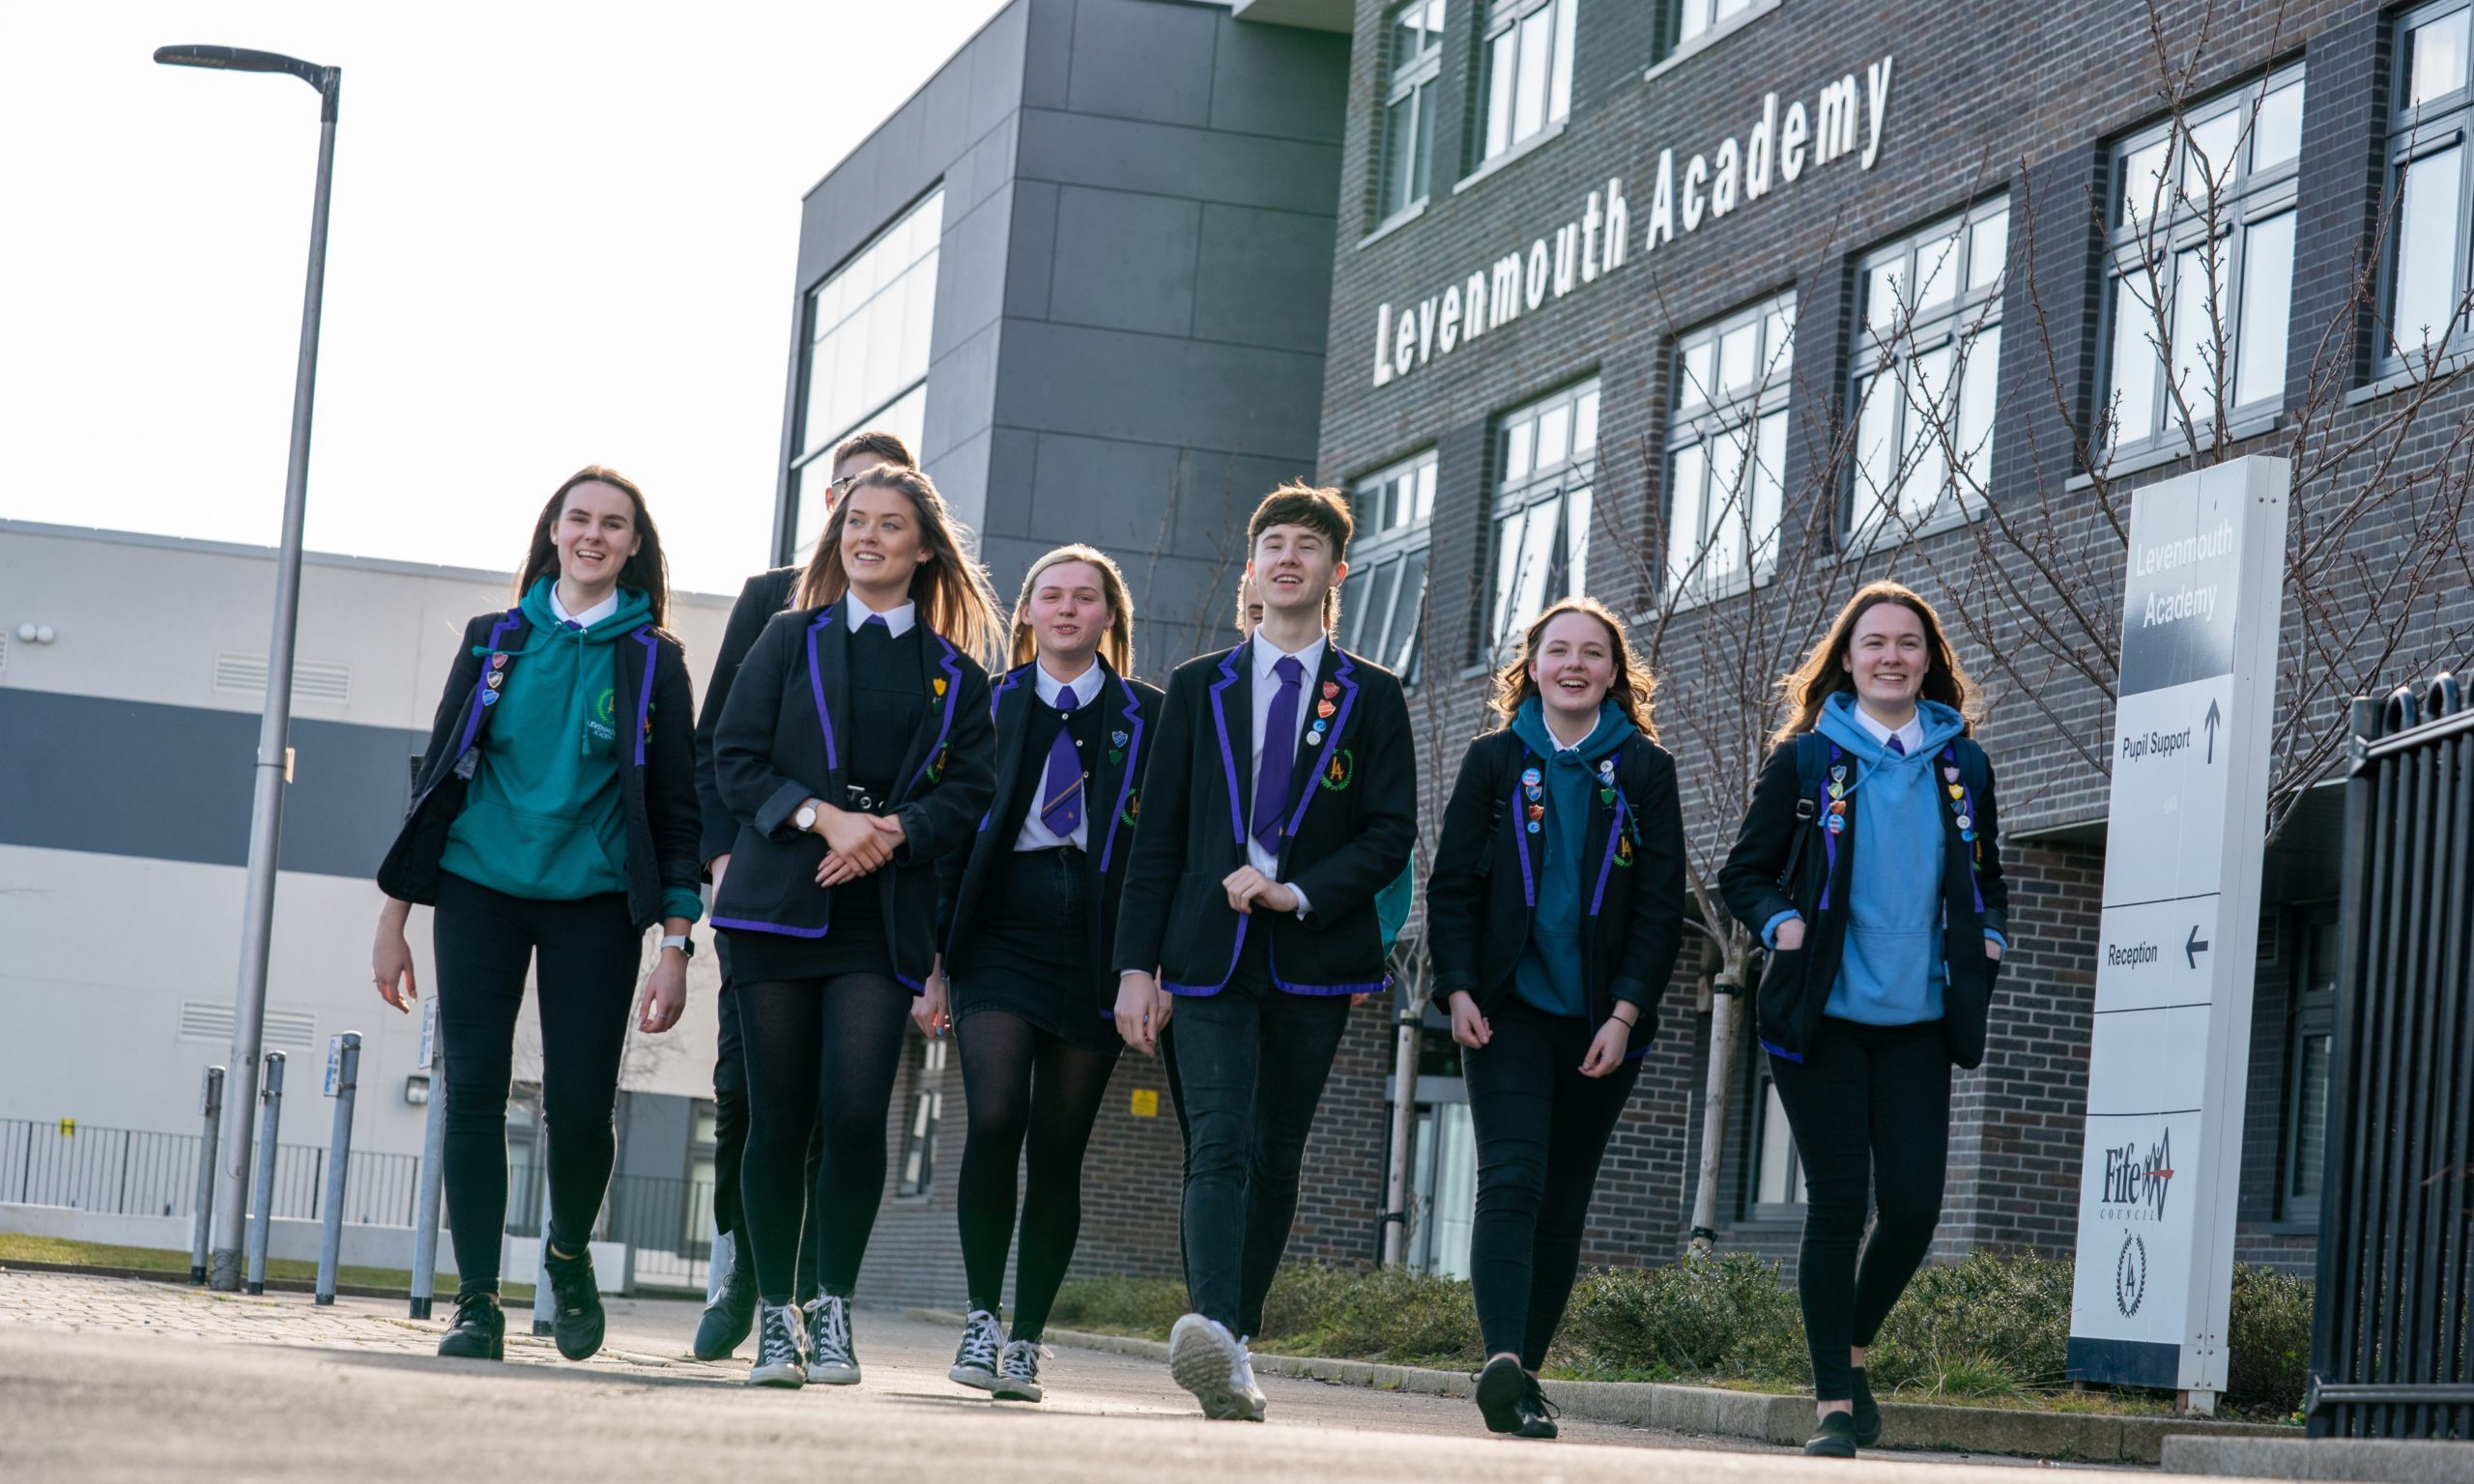 Pupils leave Levenmouth Academy, some for the last time and some not knowing when they will return.